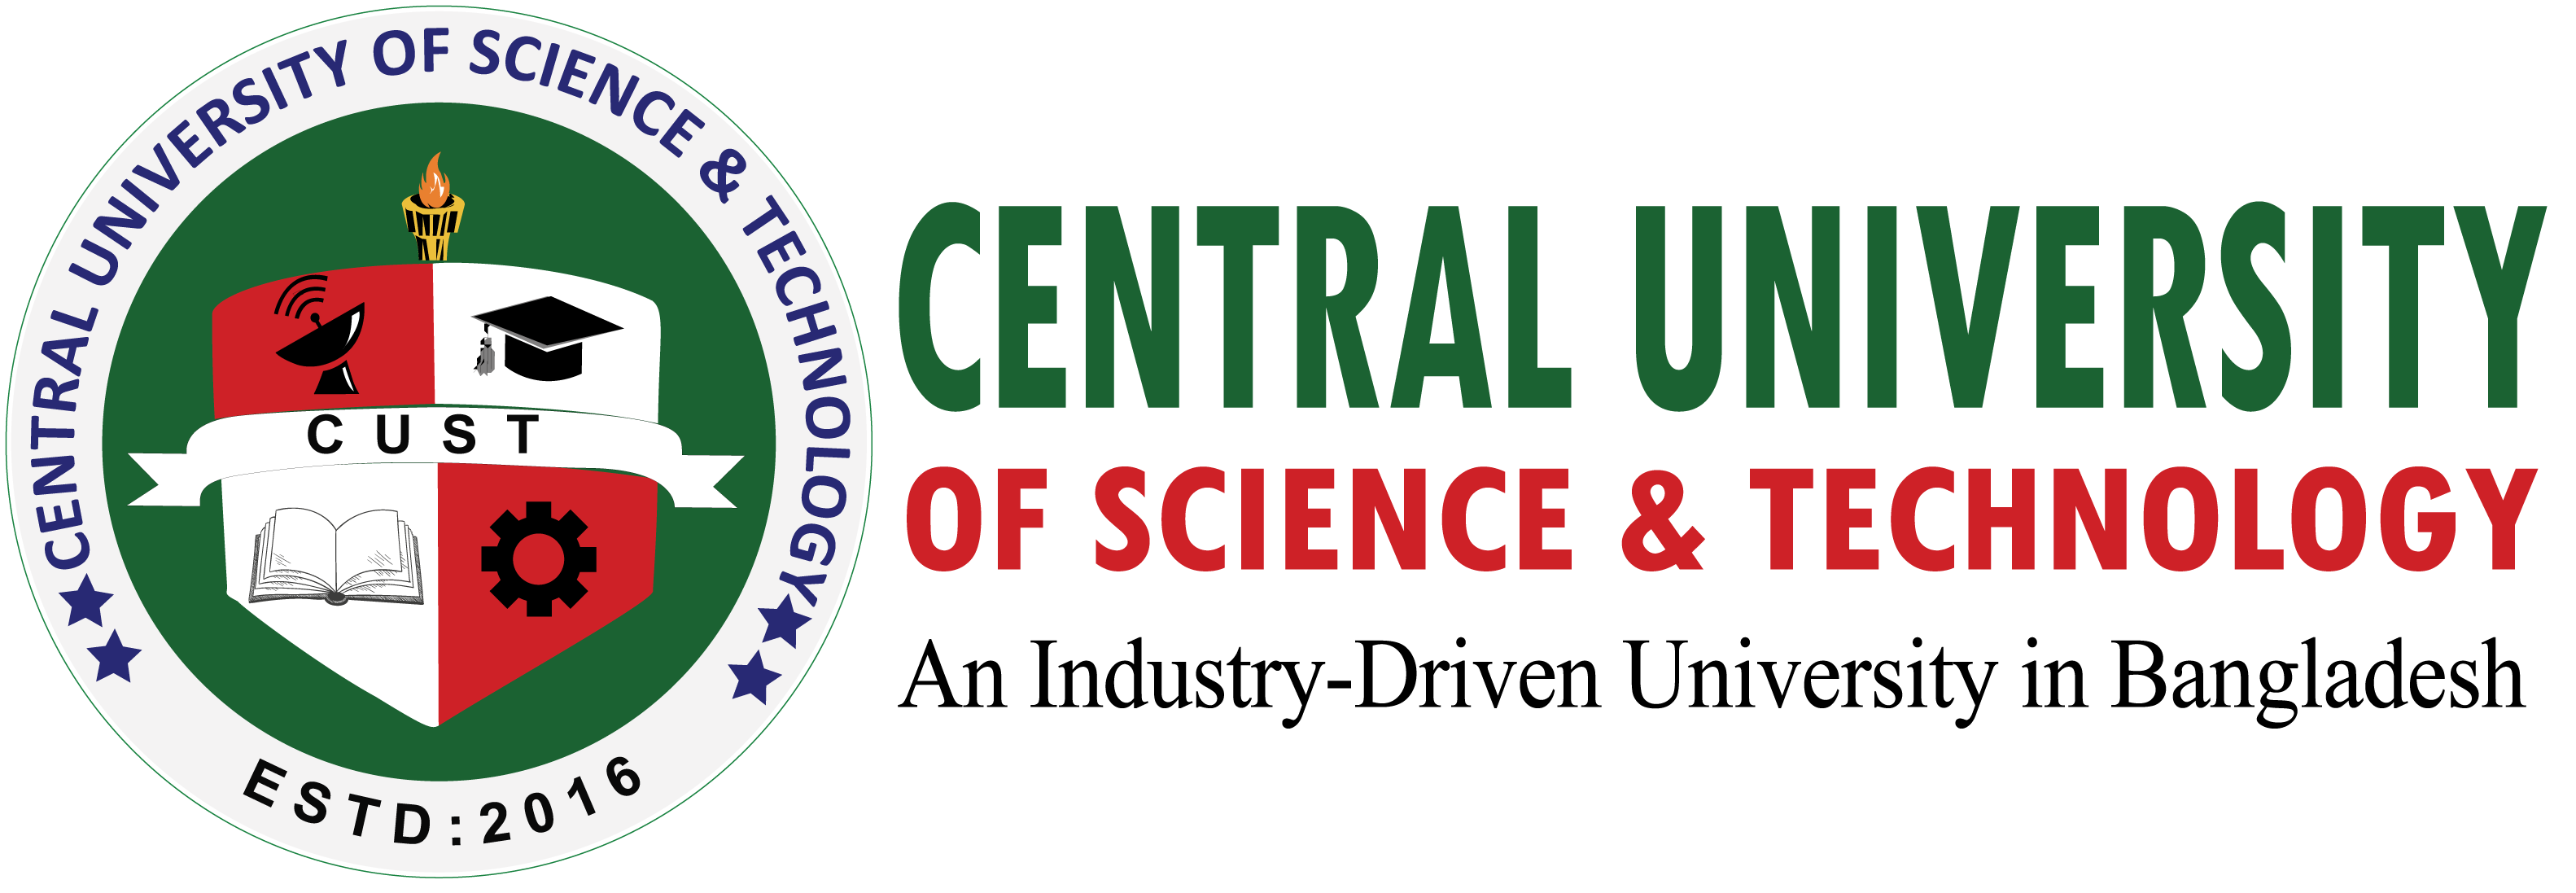 Sign Up For CUST News / Event / Newsletter Subscription - Central University of Science & Technology